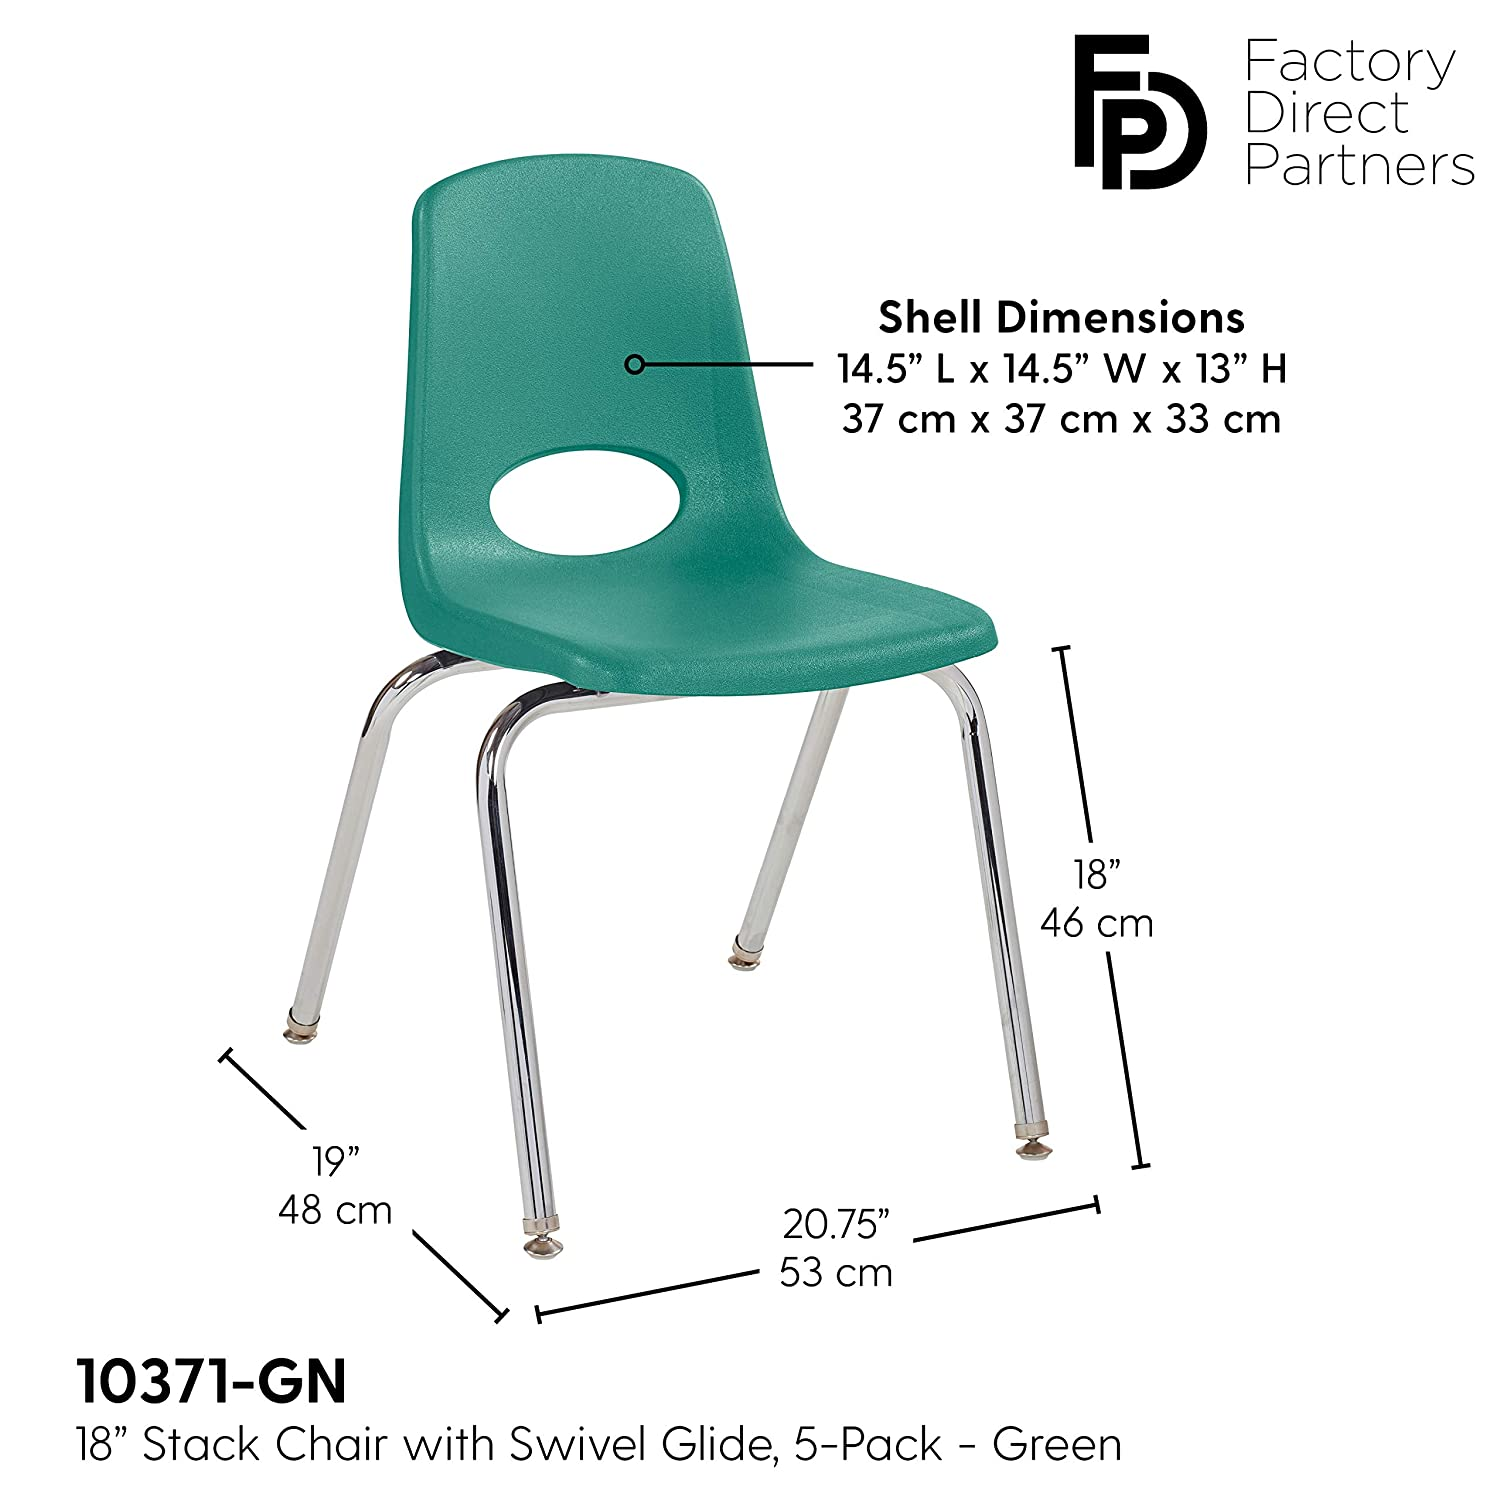 16 School Stack Chair,/Stacking Student Chairs with Chromed Steel Legs and Nylon Swivel Glides Red 6-Pack